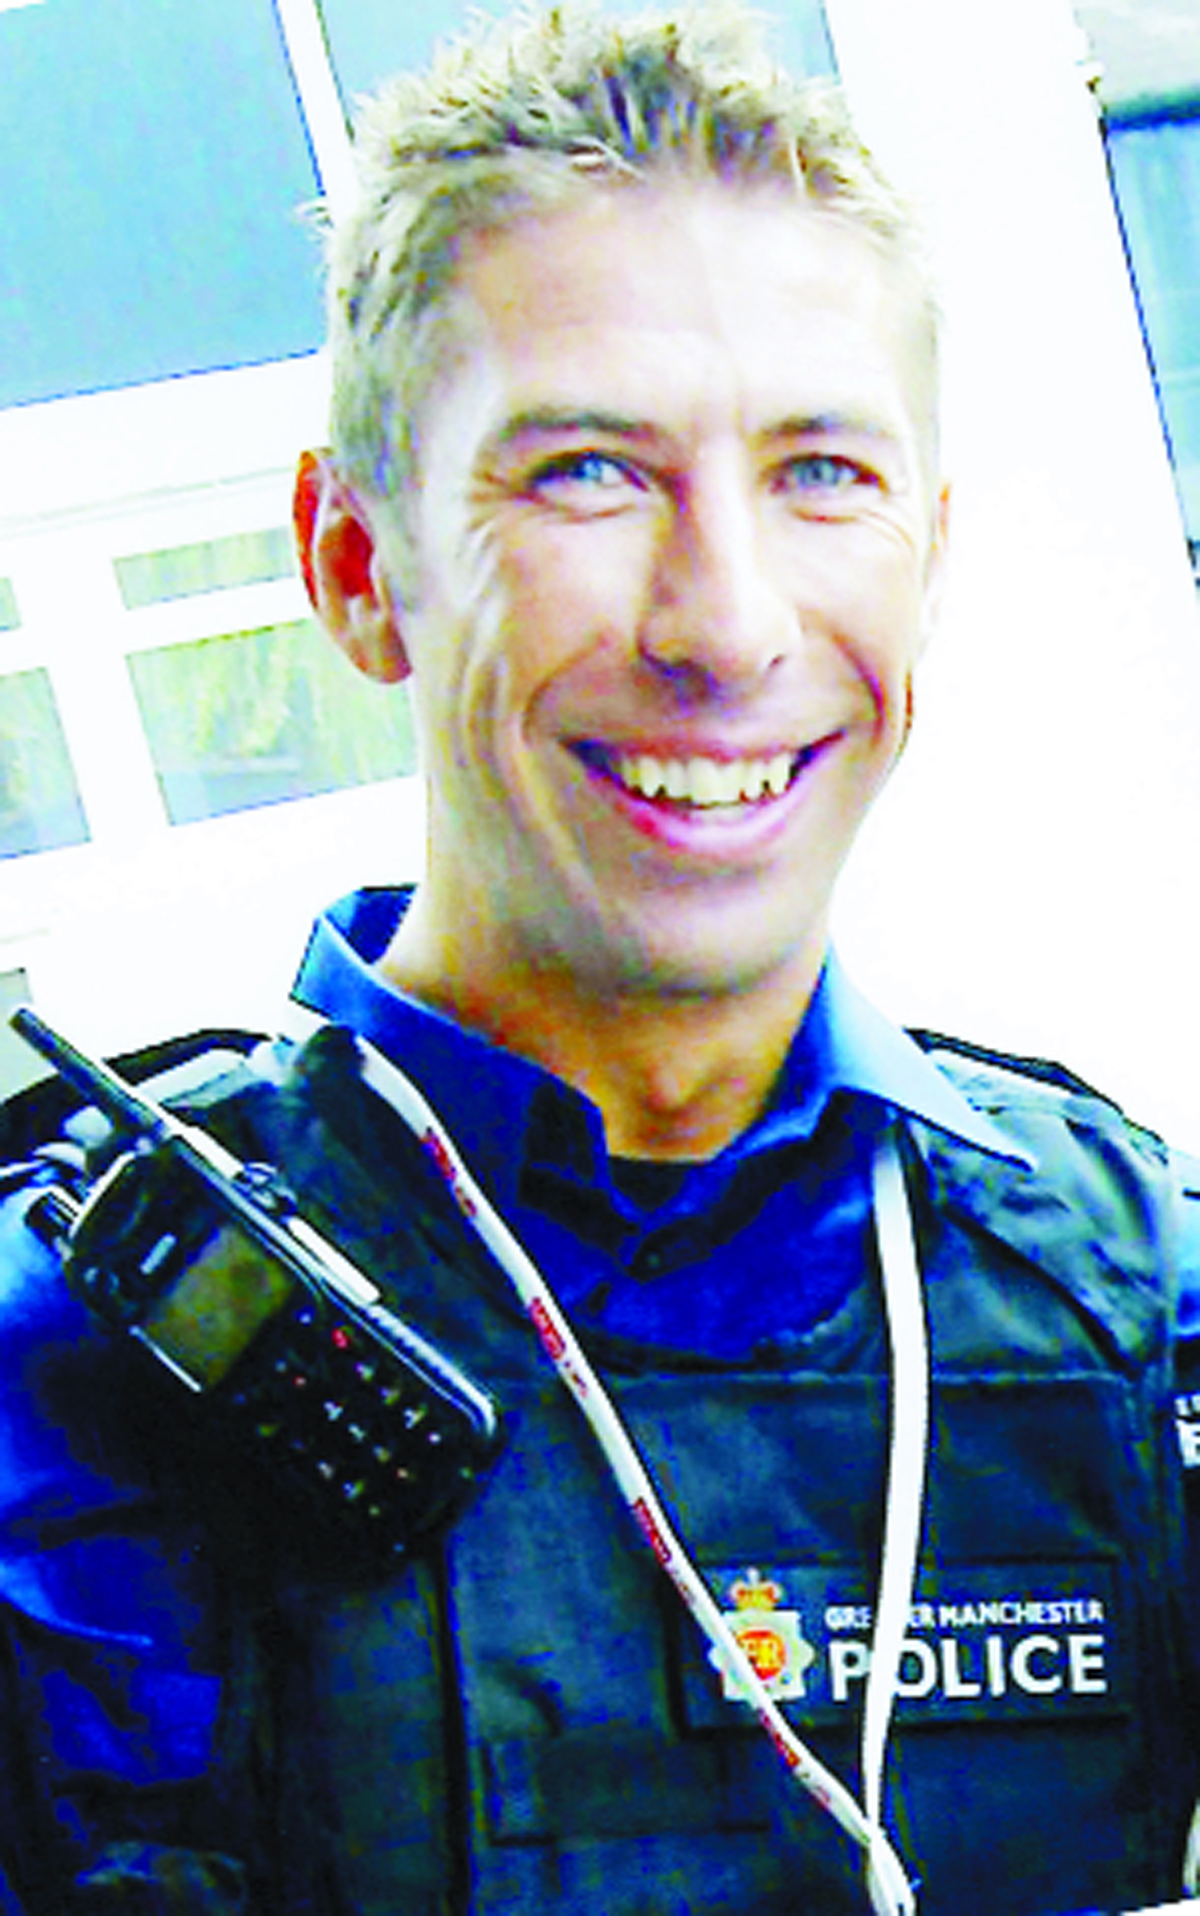 PC Ian Terry was shot and killed during a 'cops and robbers'-style training exercise, in June 2008.